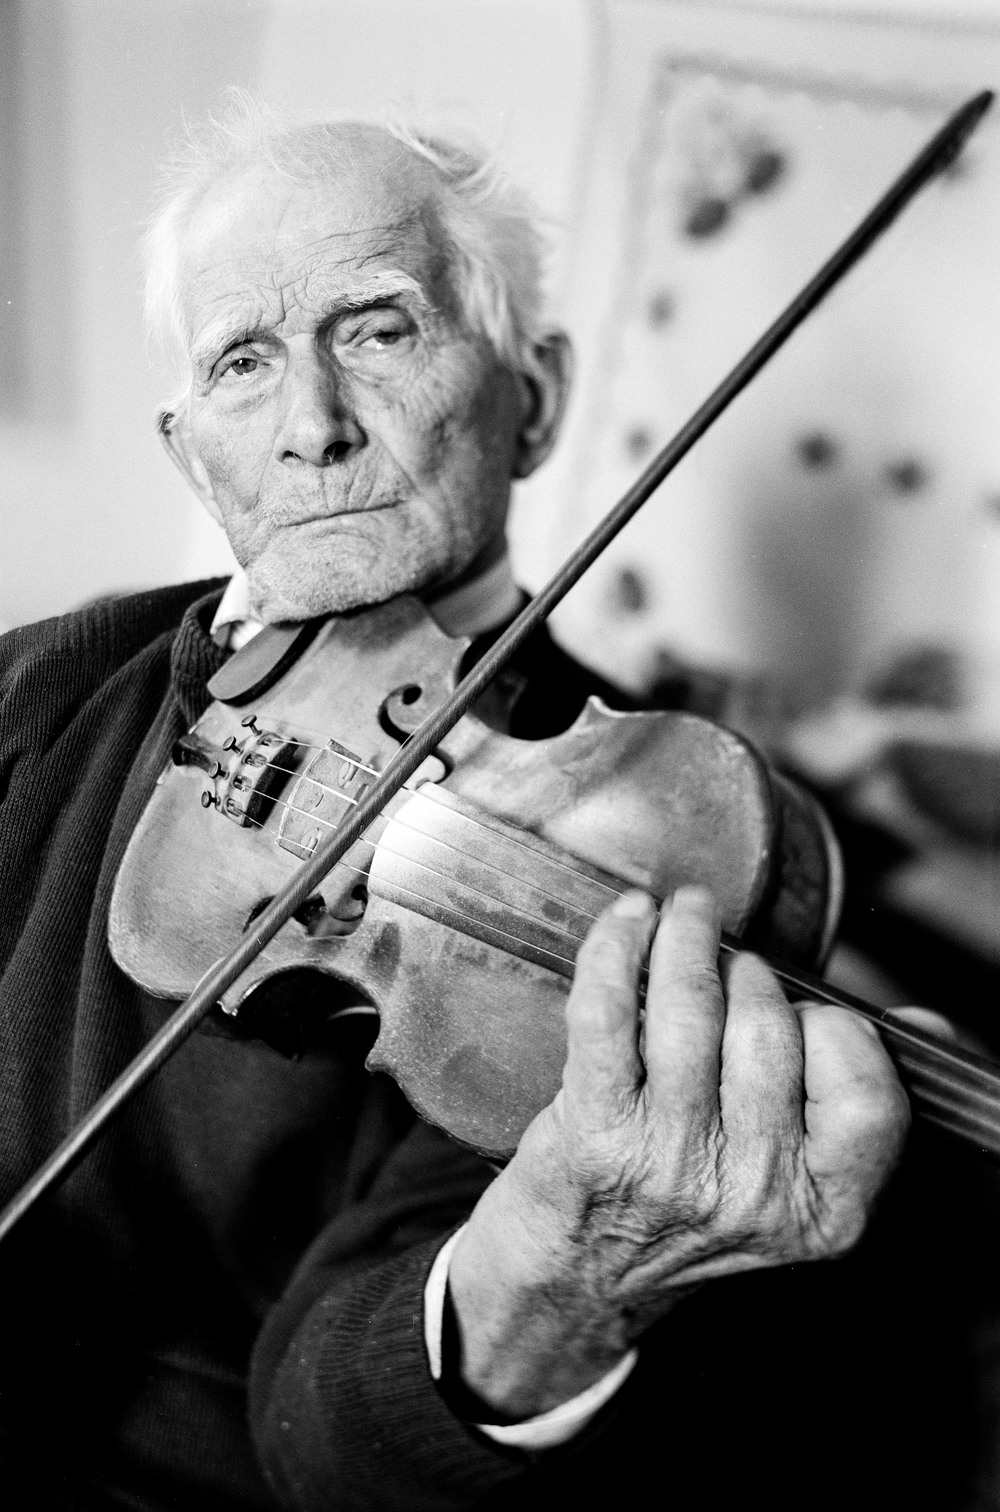 Violin player. Firtosmartonos, Romania, 2008